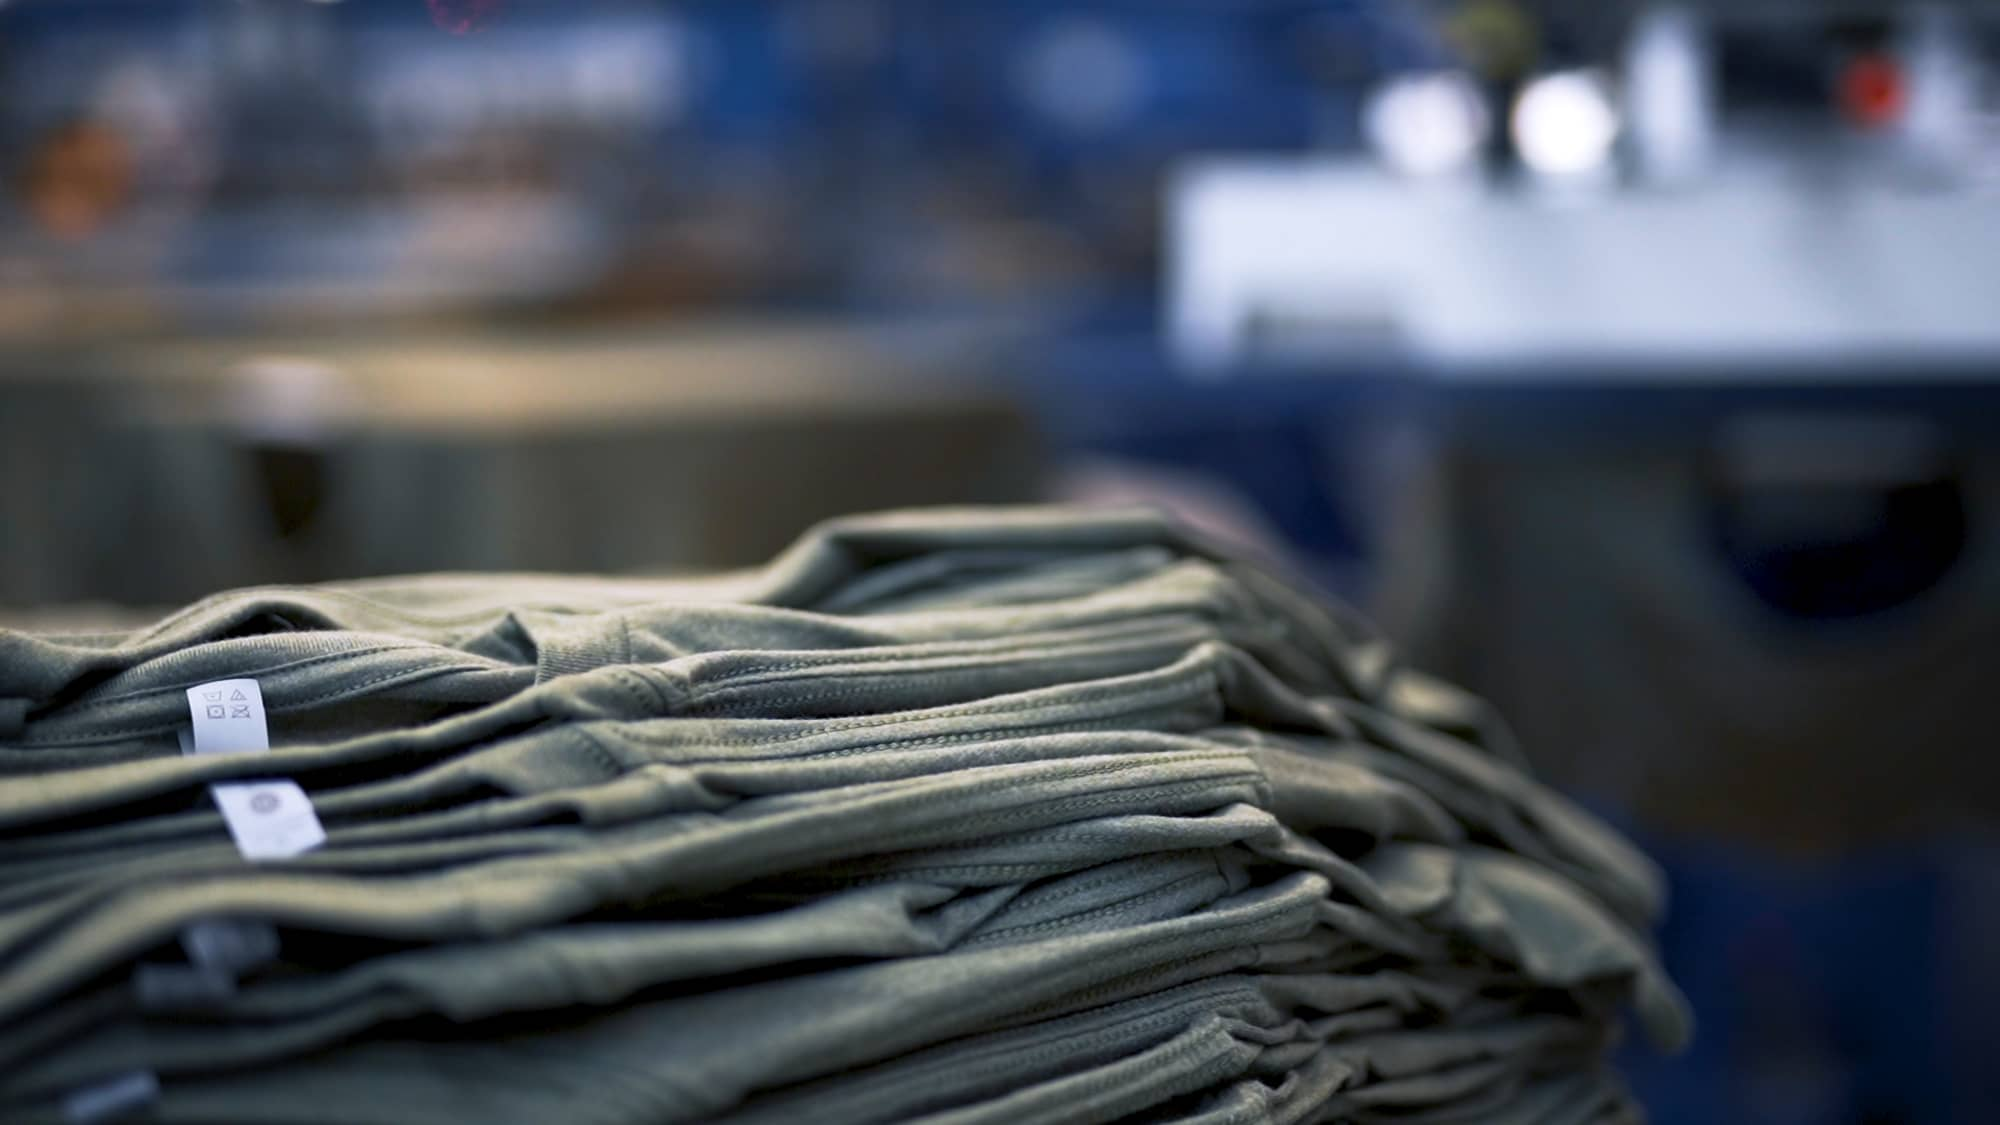 T-shirts staged for printing.